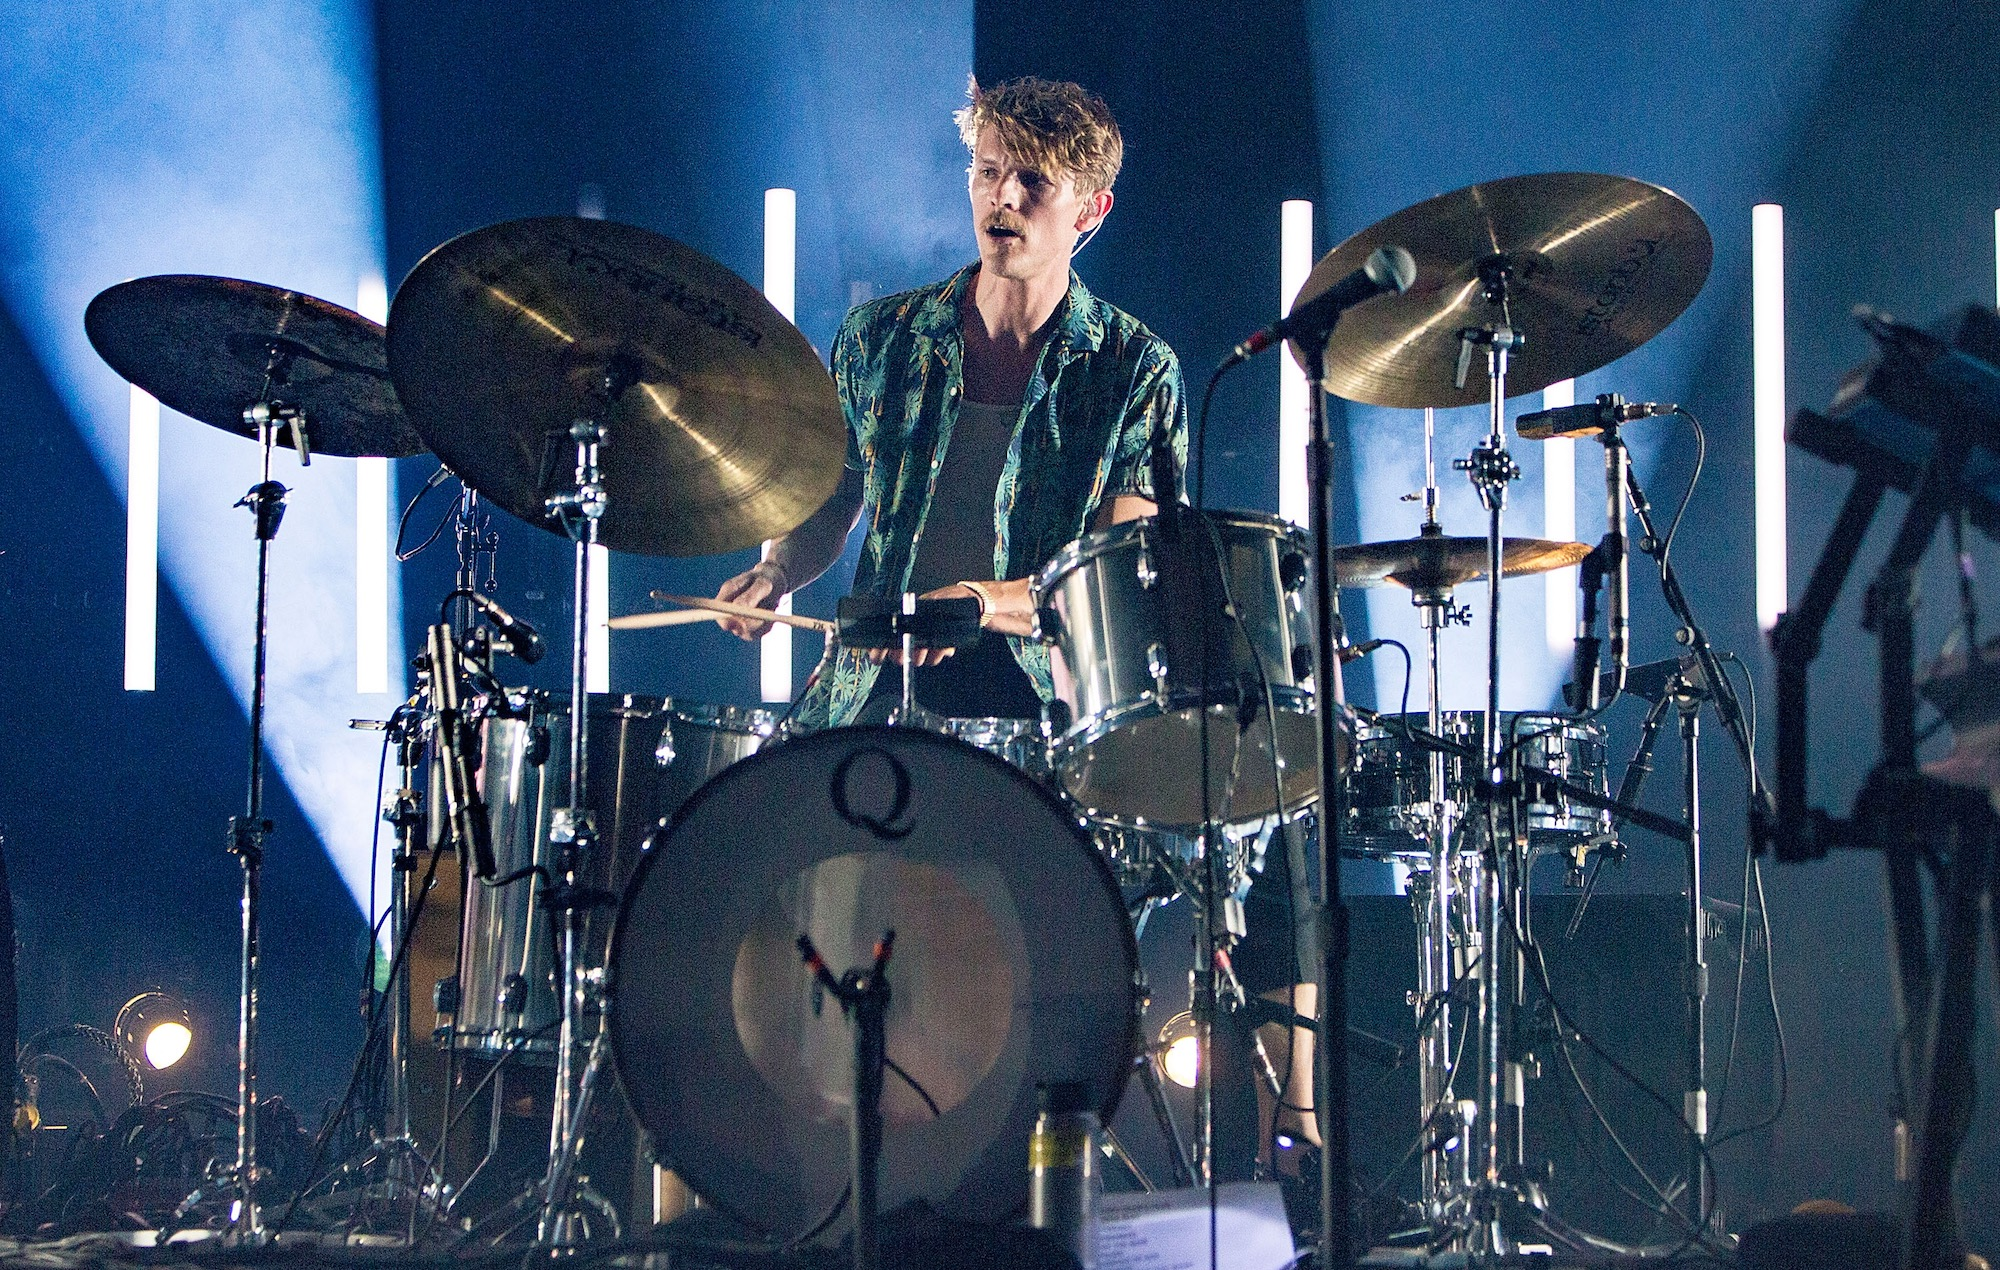 Mark Pontius performing with Foster the People